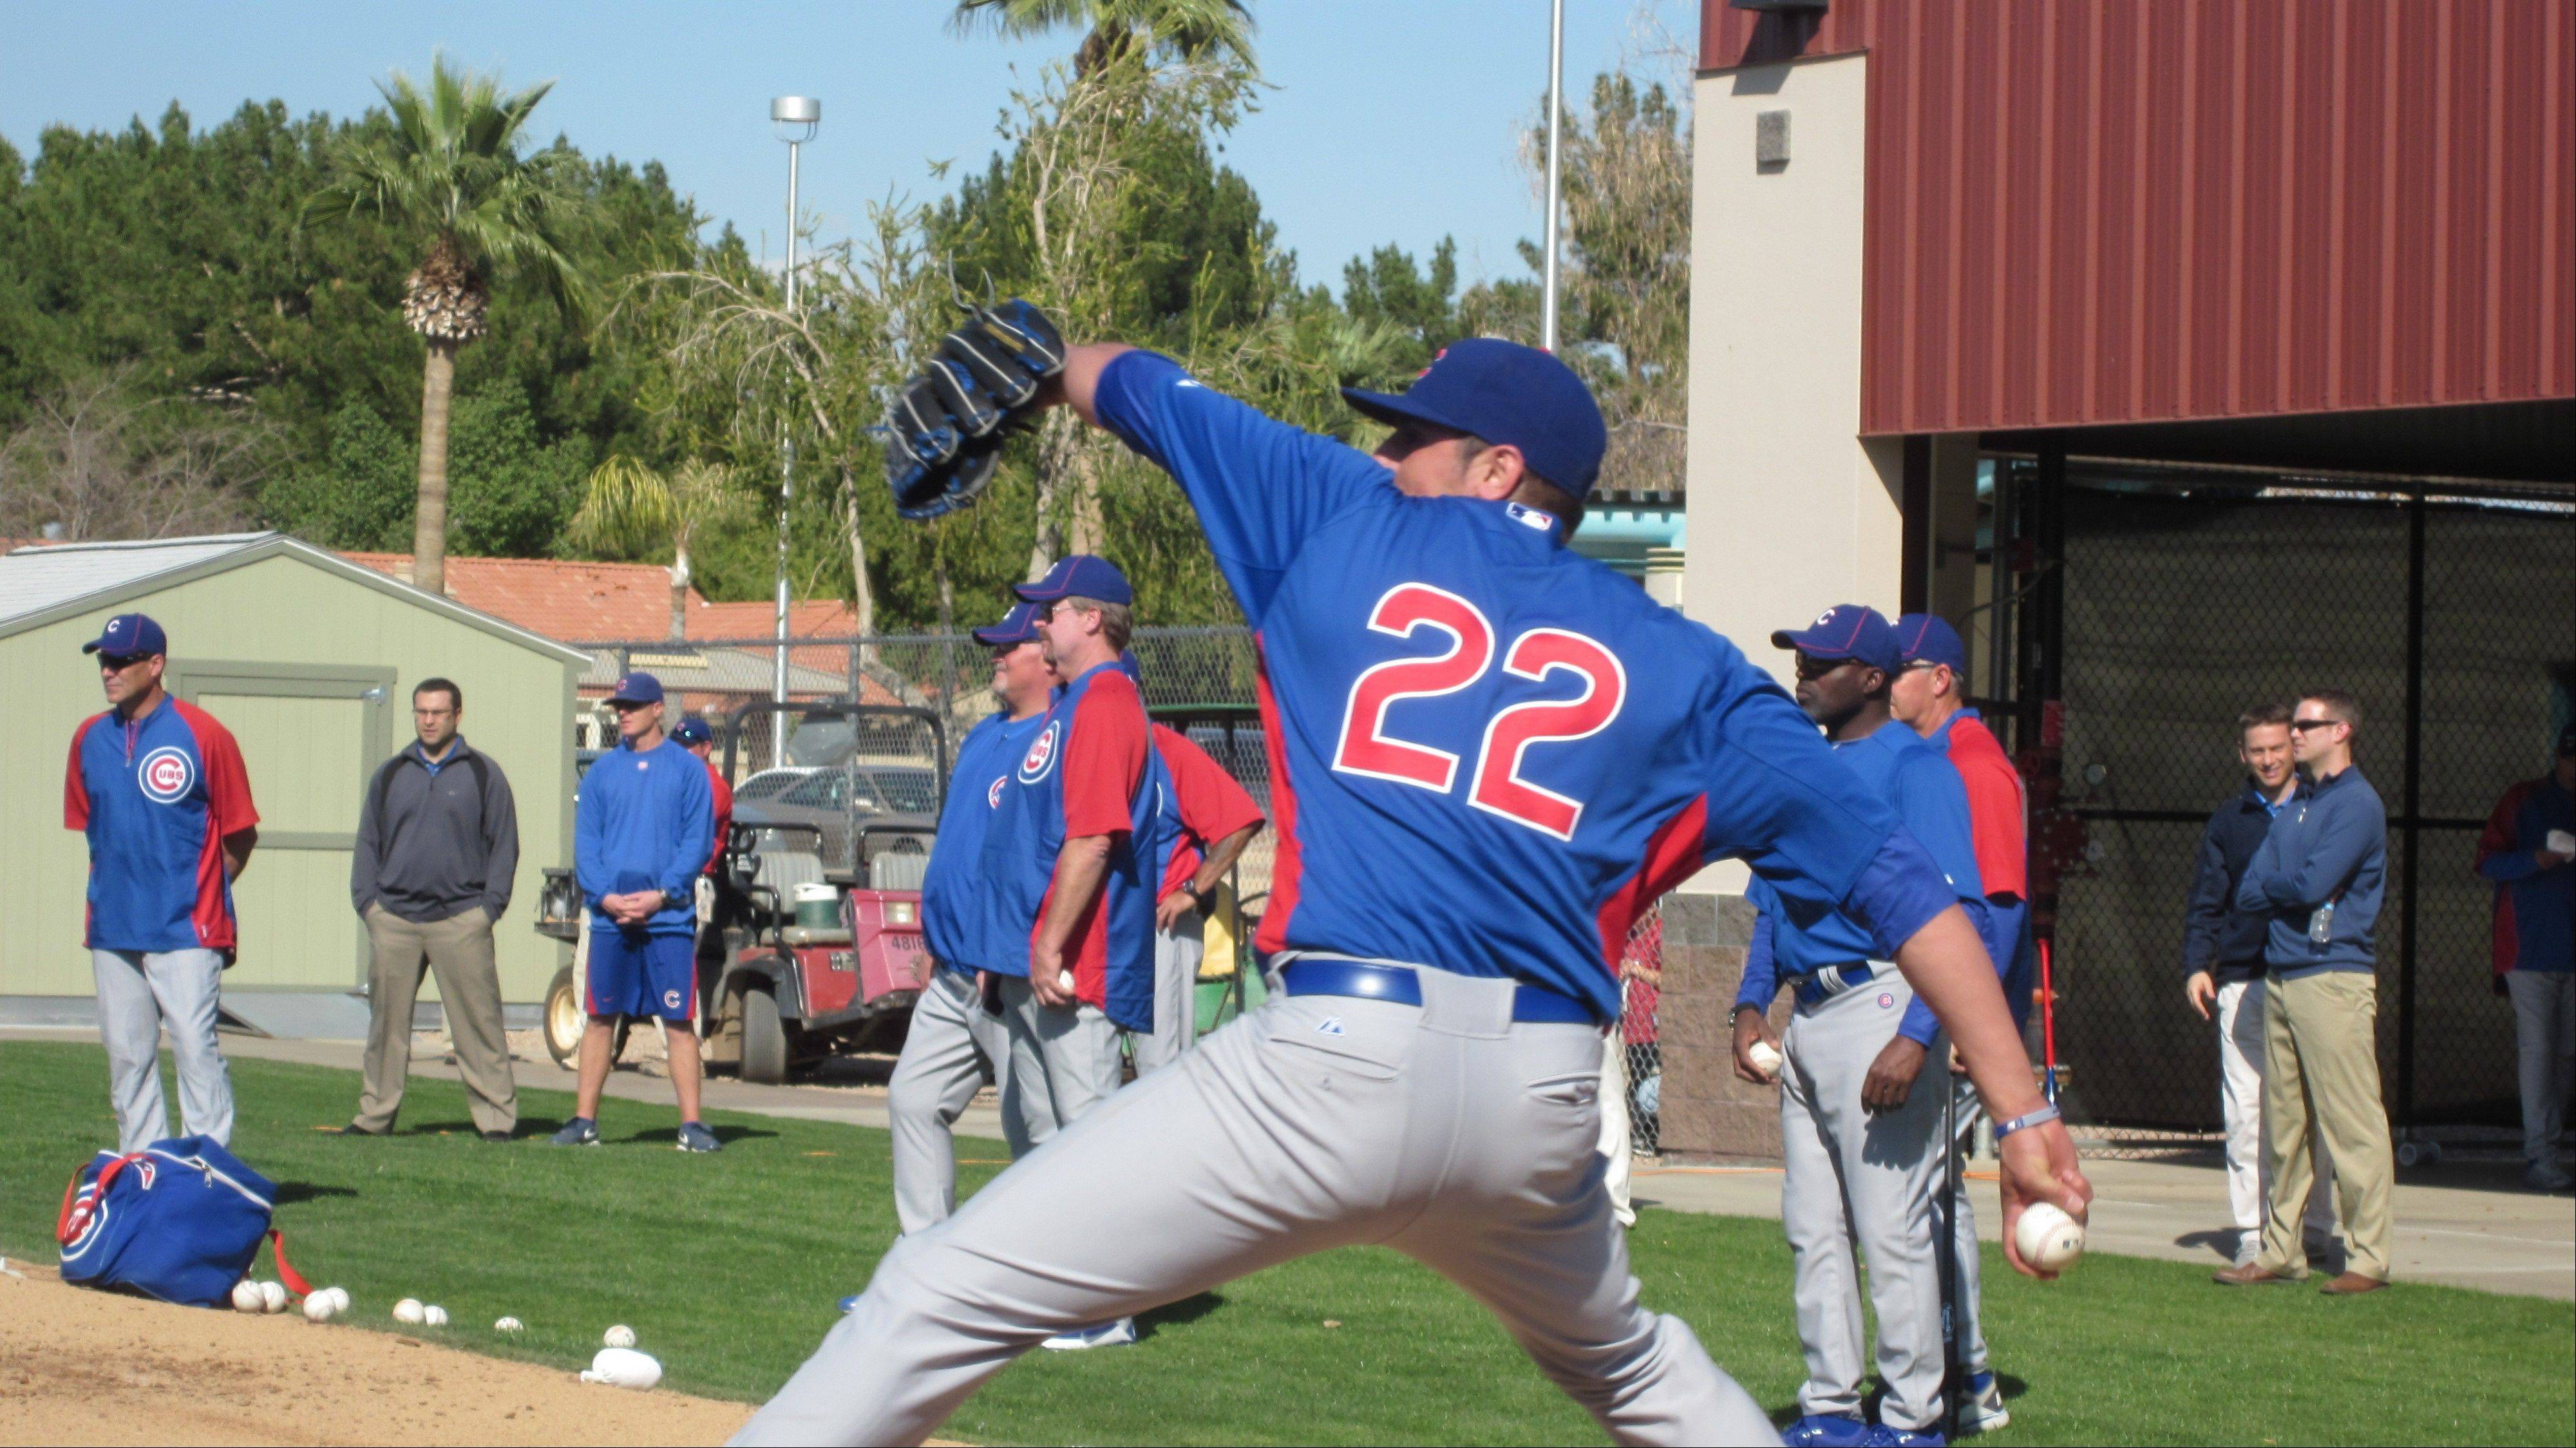 Cubs starter Matt Garza gets in some throwing Sunday, the first day of workouts for pitchers and catchers in Mesa, Ariz.